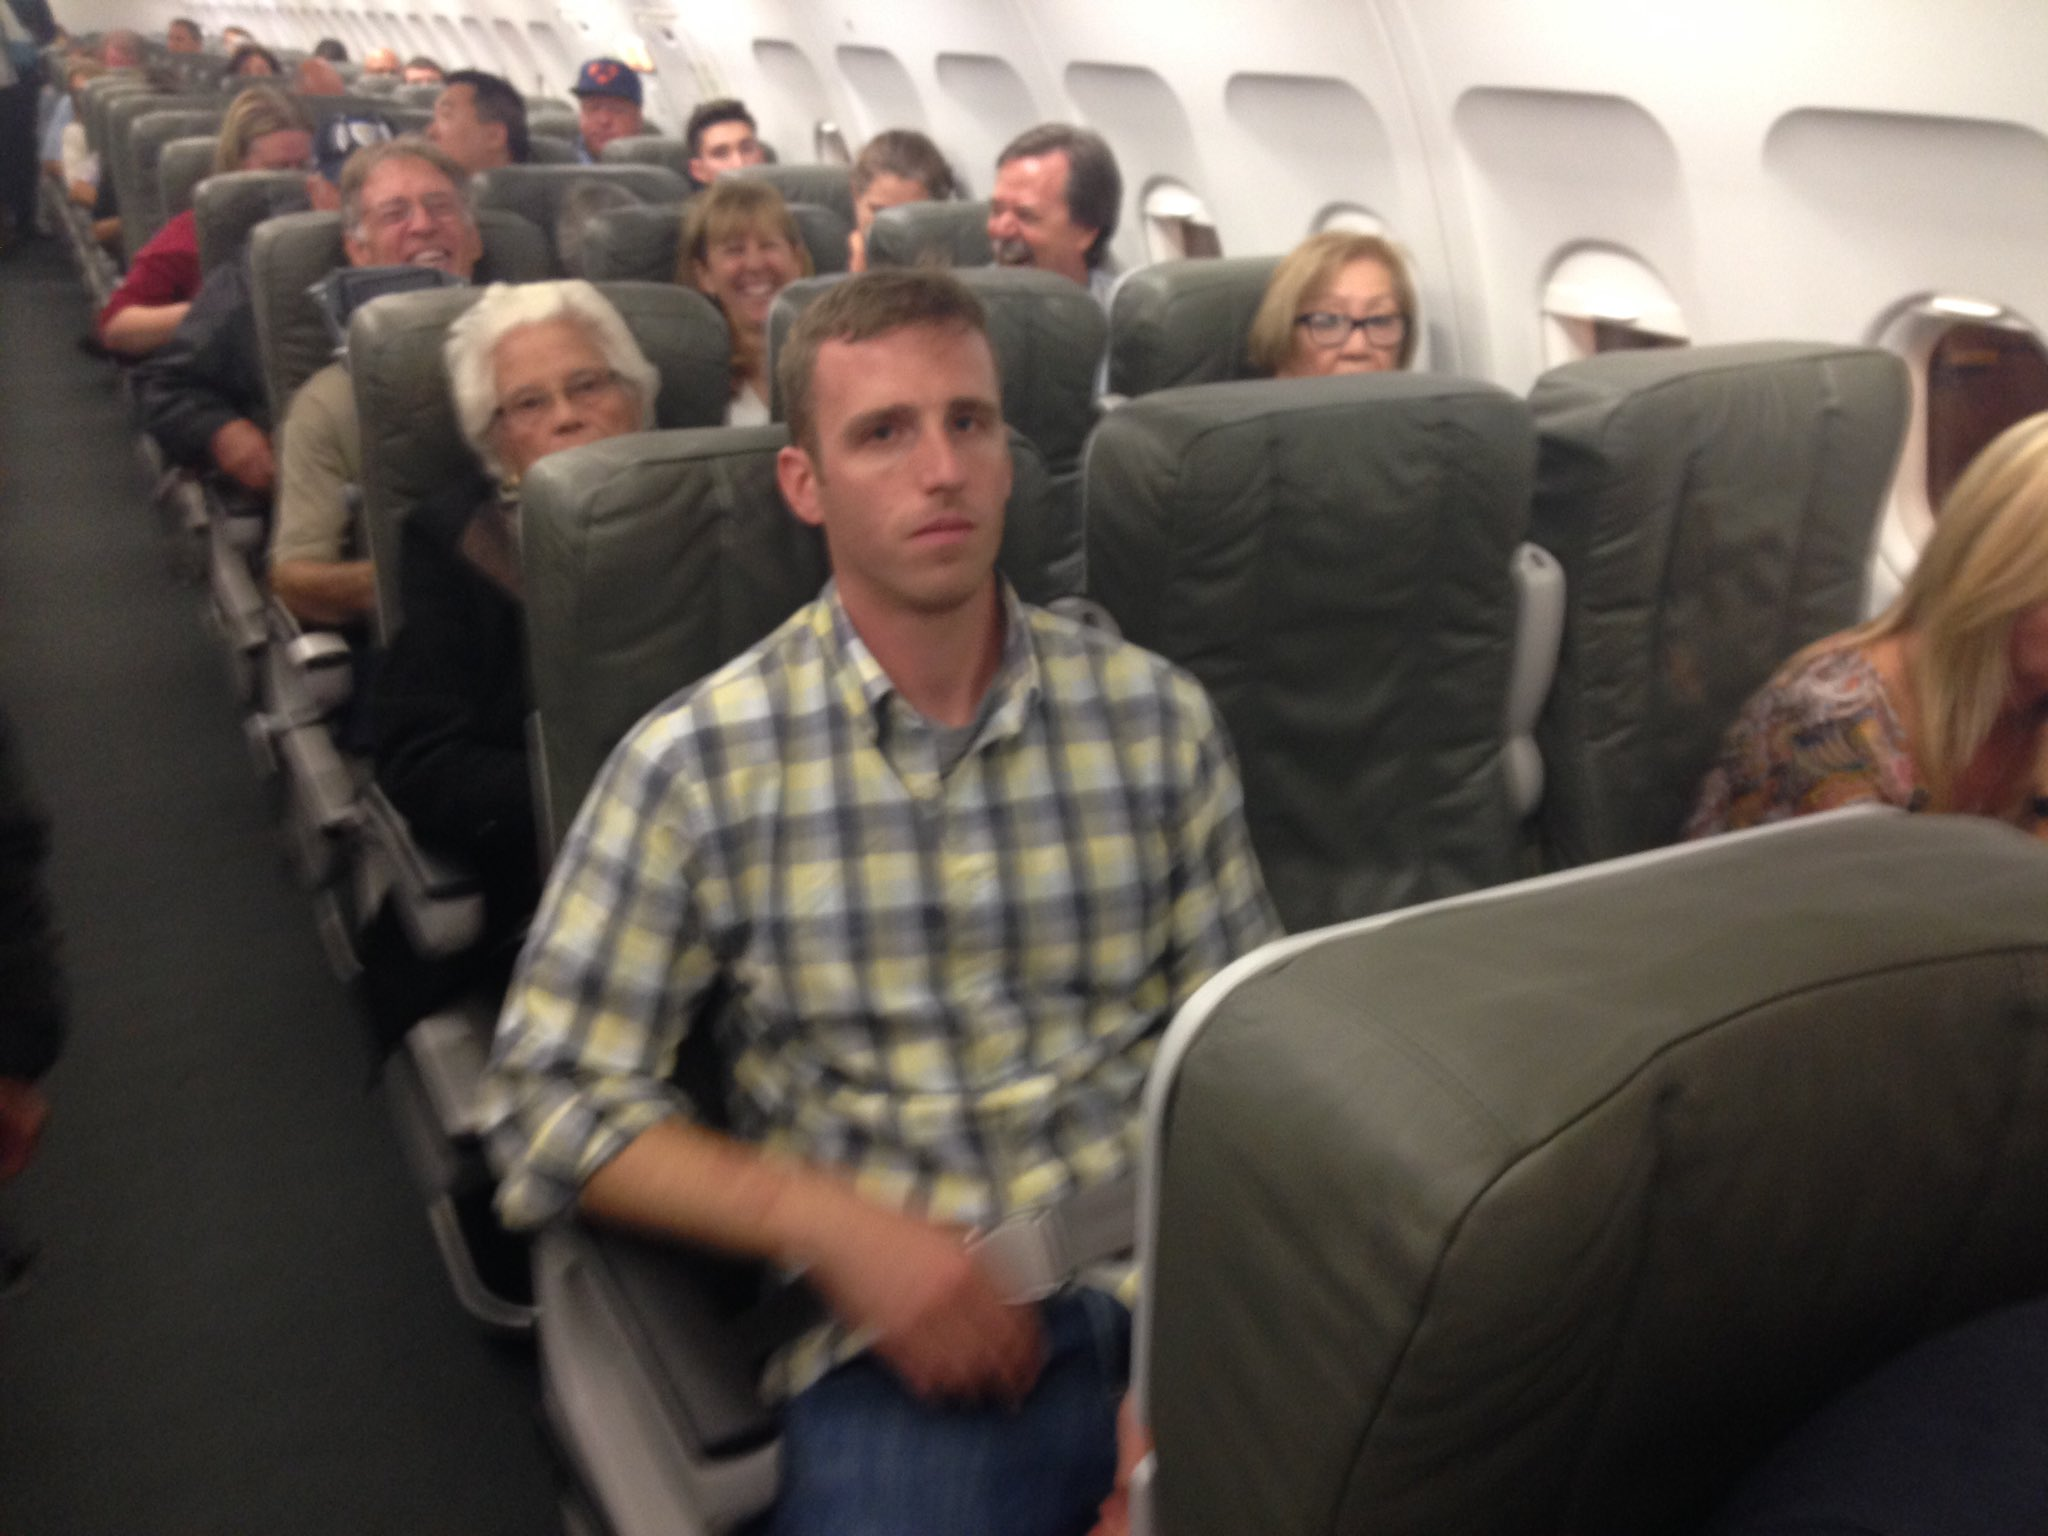 Thumbnail for Two women were harassed by a man  on the the board of plane in Texas